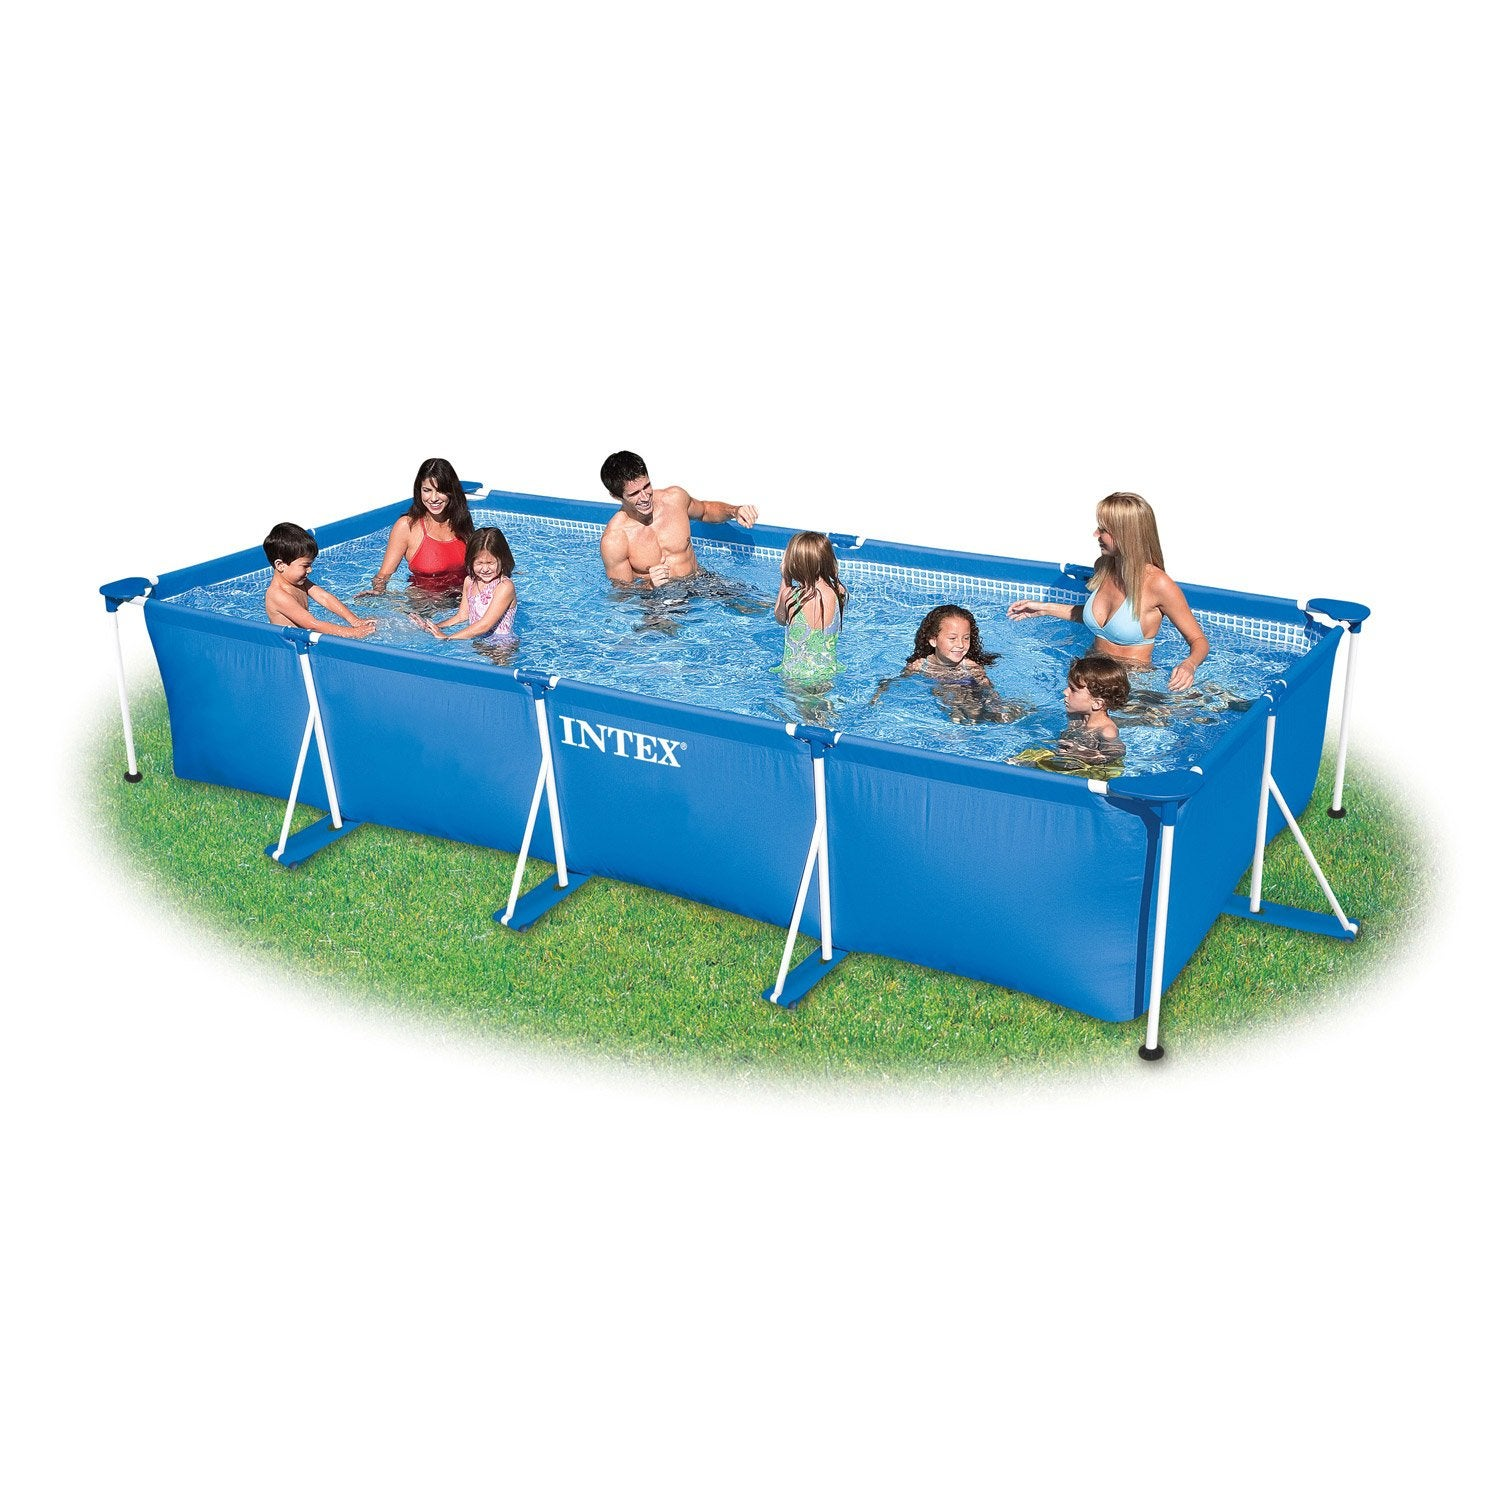 Piscine hors sol tubulaire frame junior intex for Piscine tubulaire intex castorama